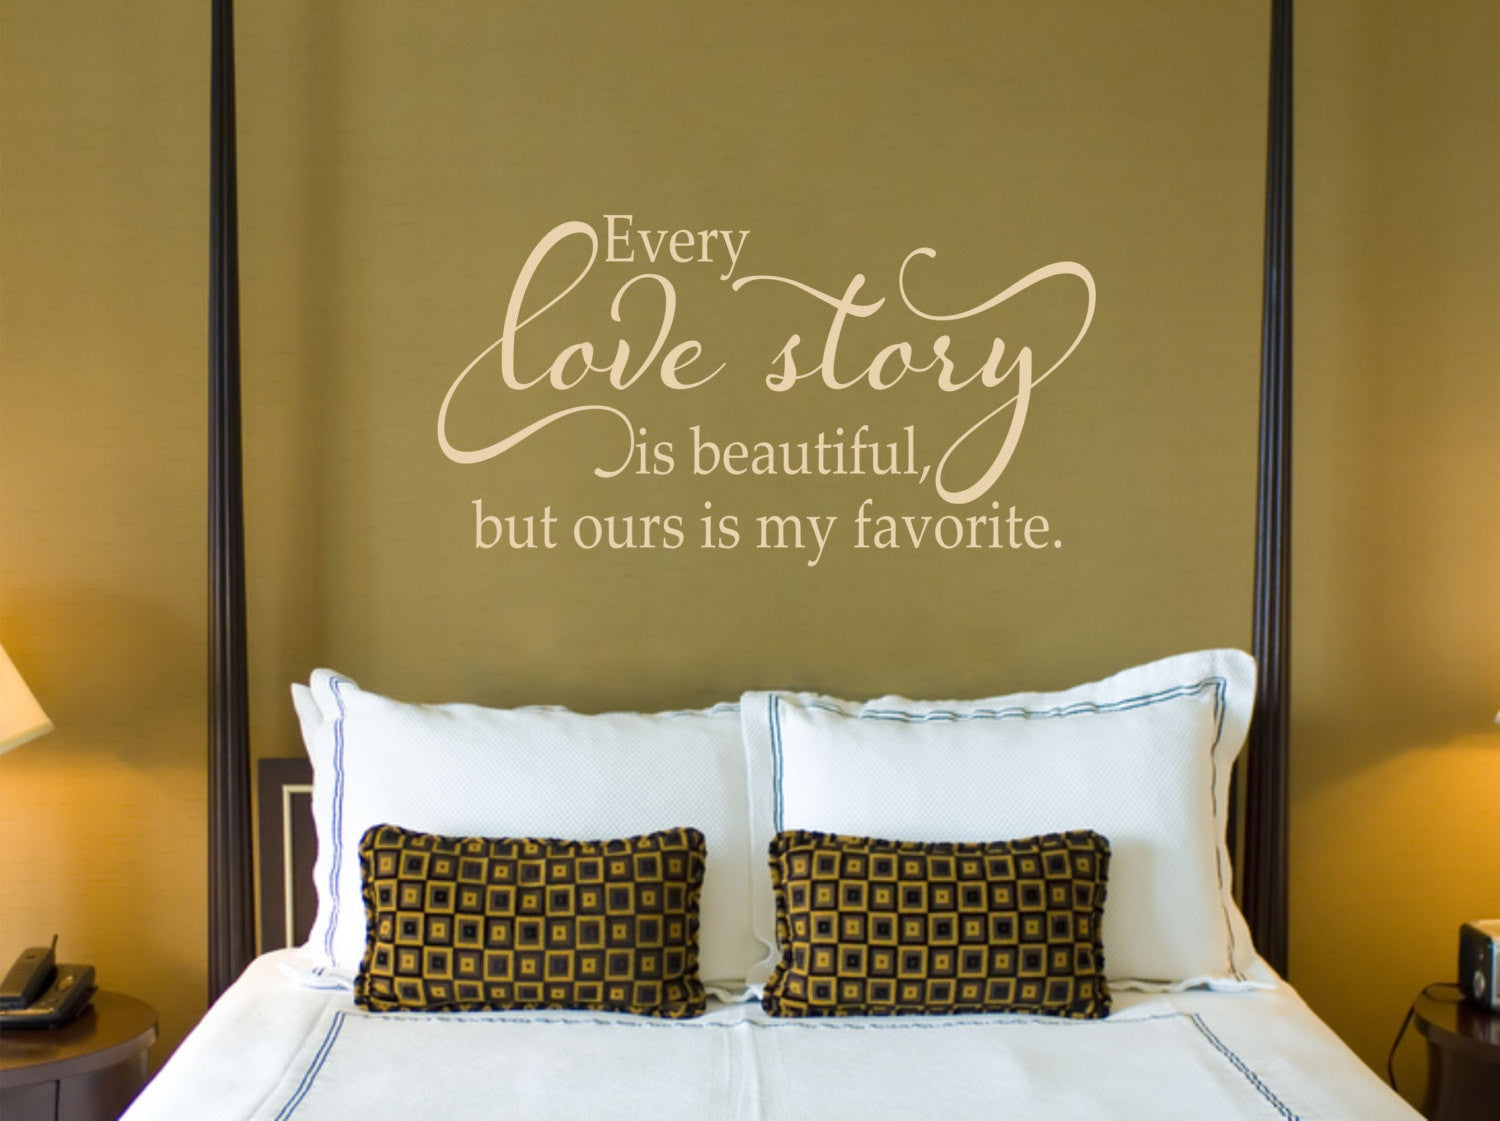 Every Love Story is Beautiful Vinyl Wall Decal